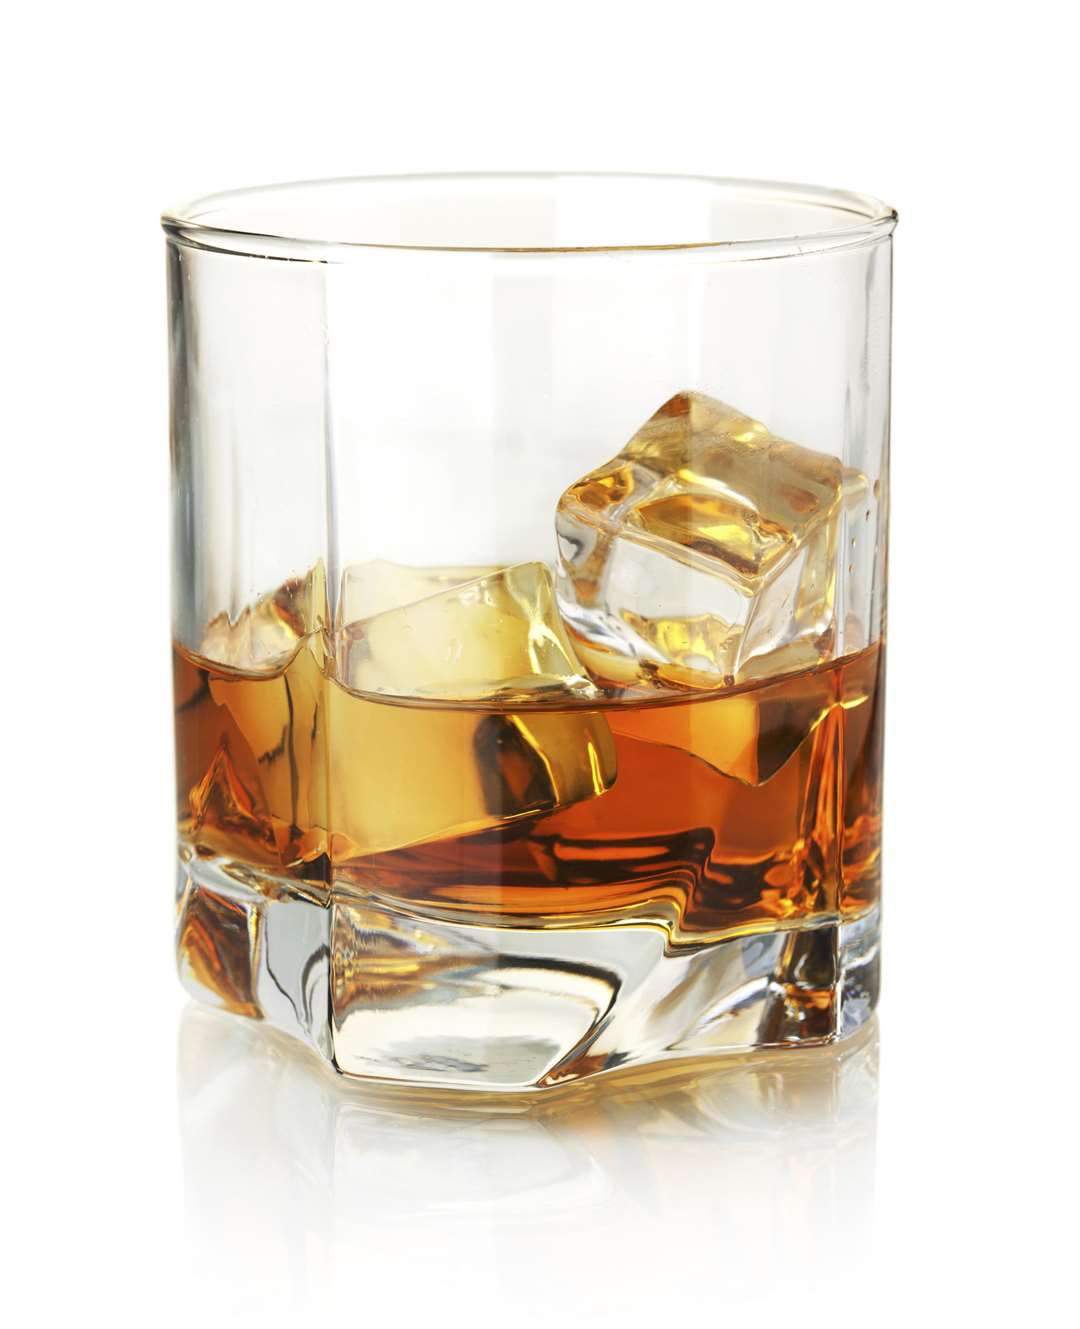 Whiskey glass KMG USE ONLY SUBMITTED BY Thinkstock, 0800 028 6268 FM2853771 (5876988)